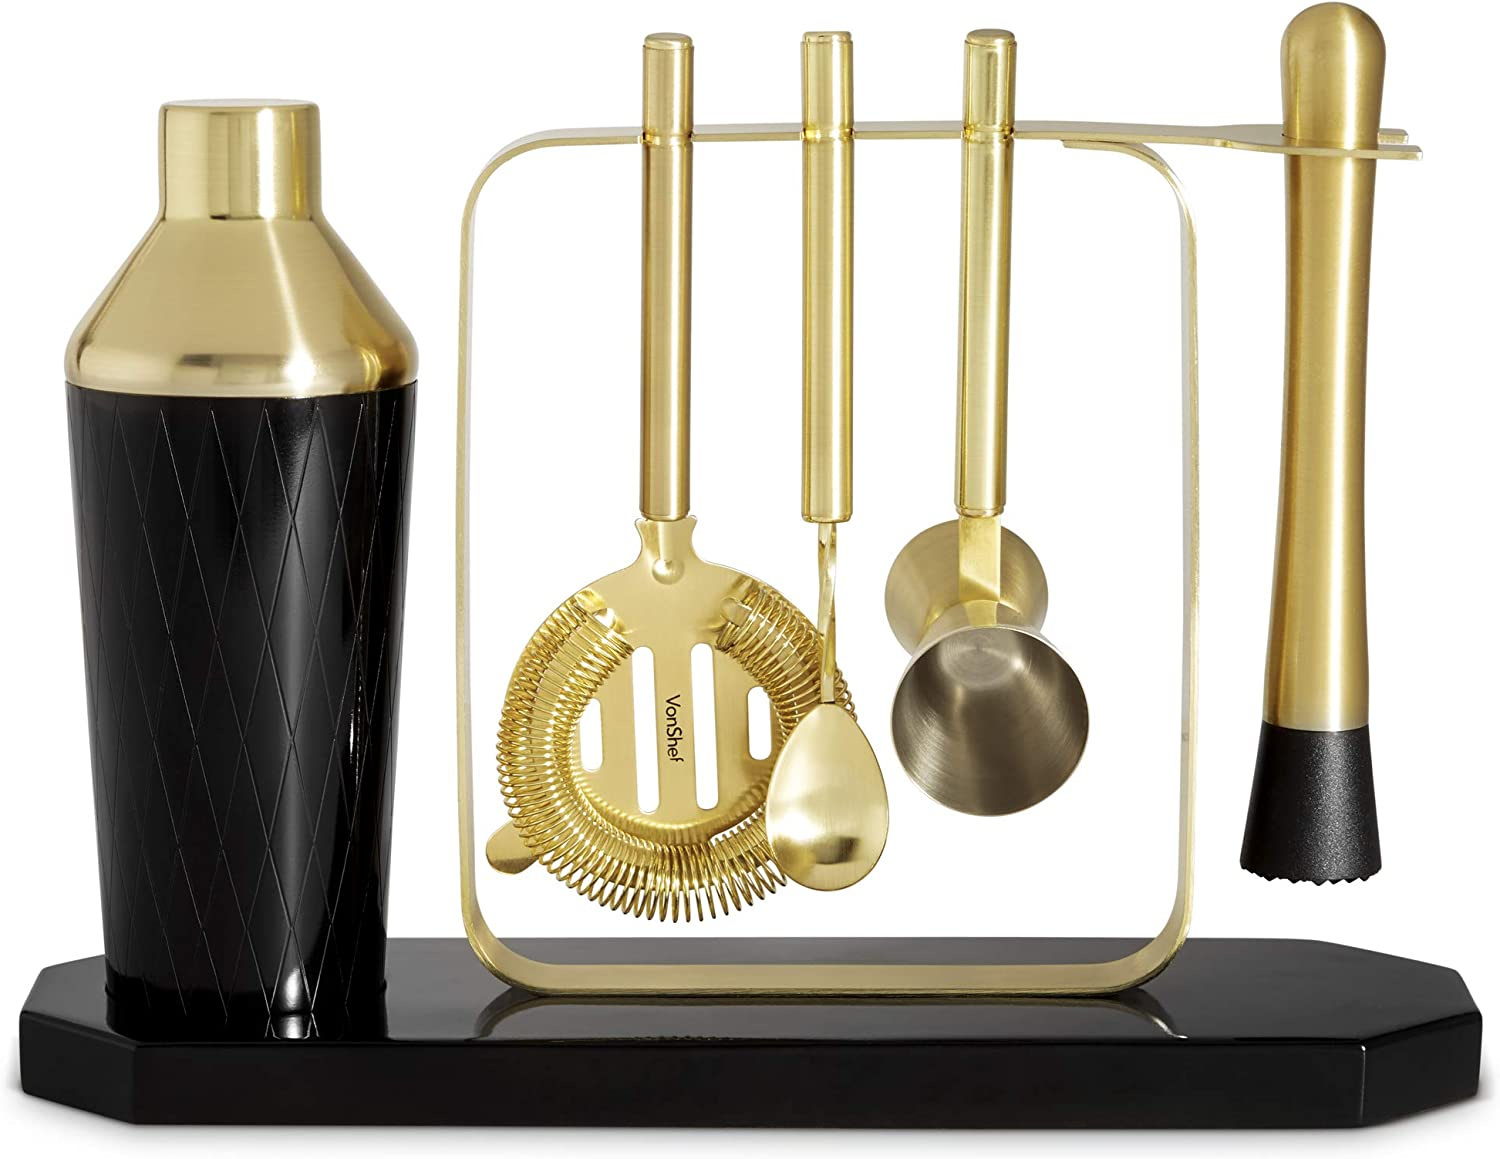 VonShef Premium Cocktail Shaker Barware Set with Display Stand, Includes Cocktail Kit  16oz Shaker, Muddler, Bar Spoon, Hawthorne Strainer, 1oz Jigger and Recipe Book – Black and gold